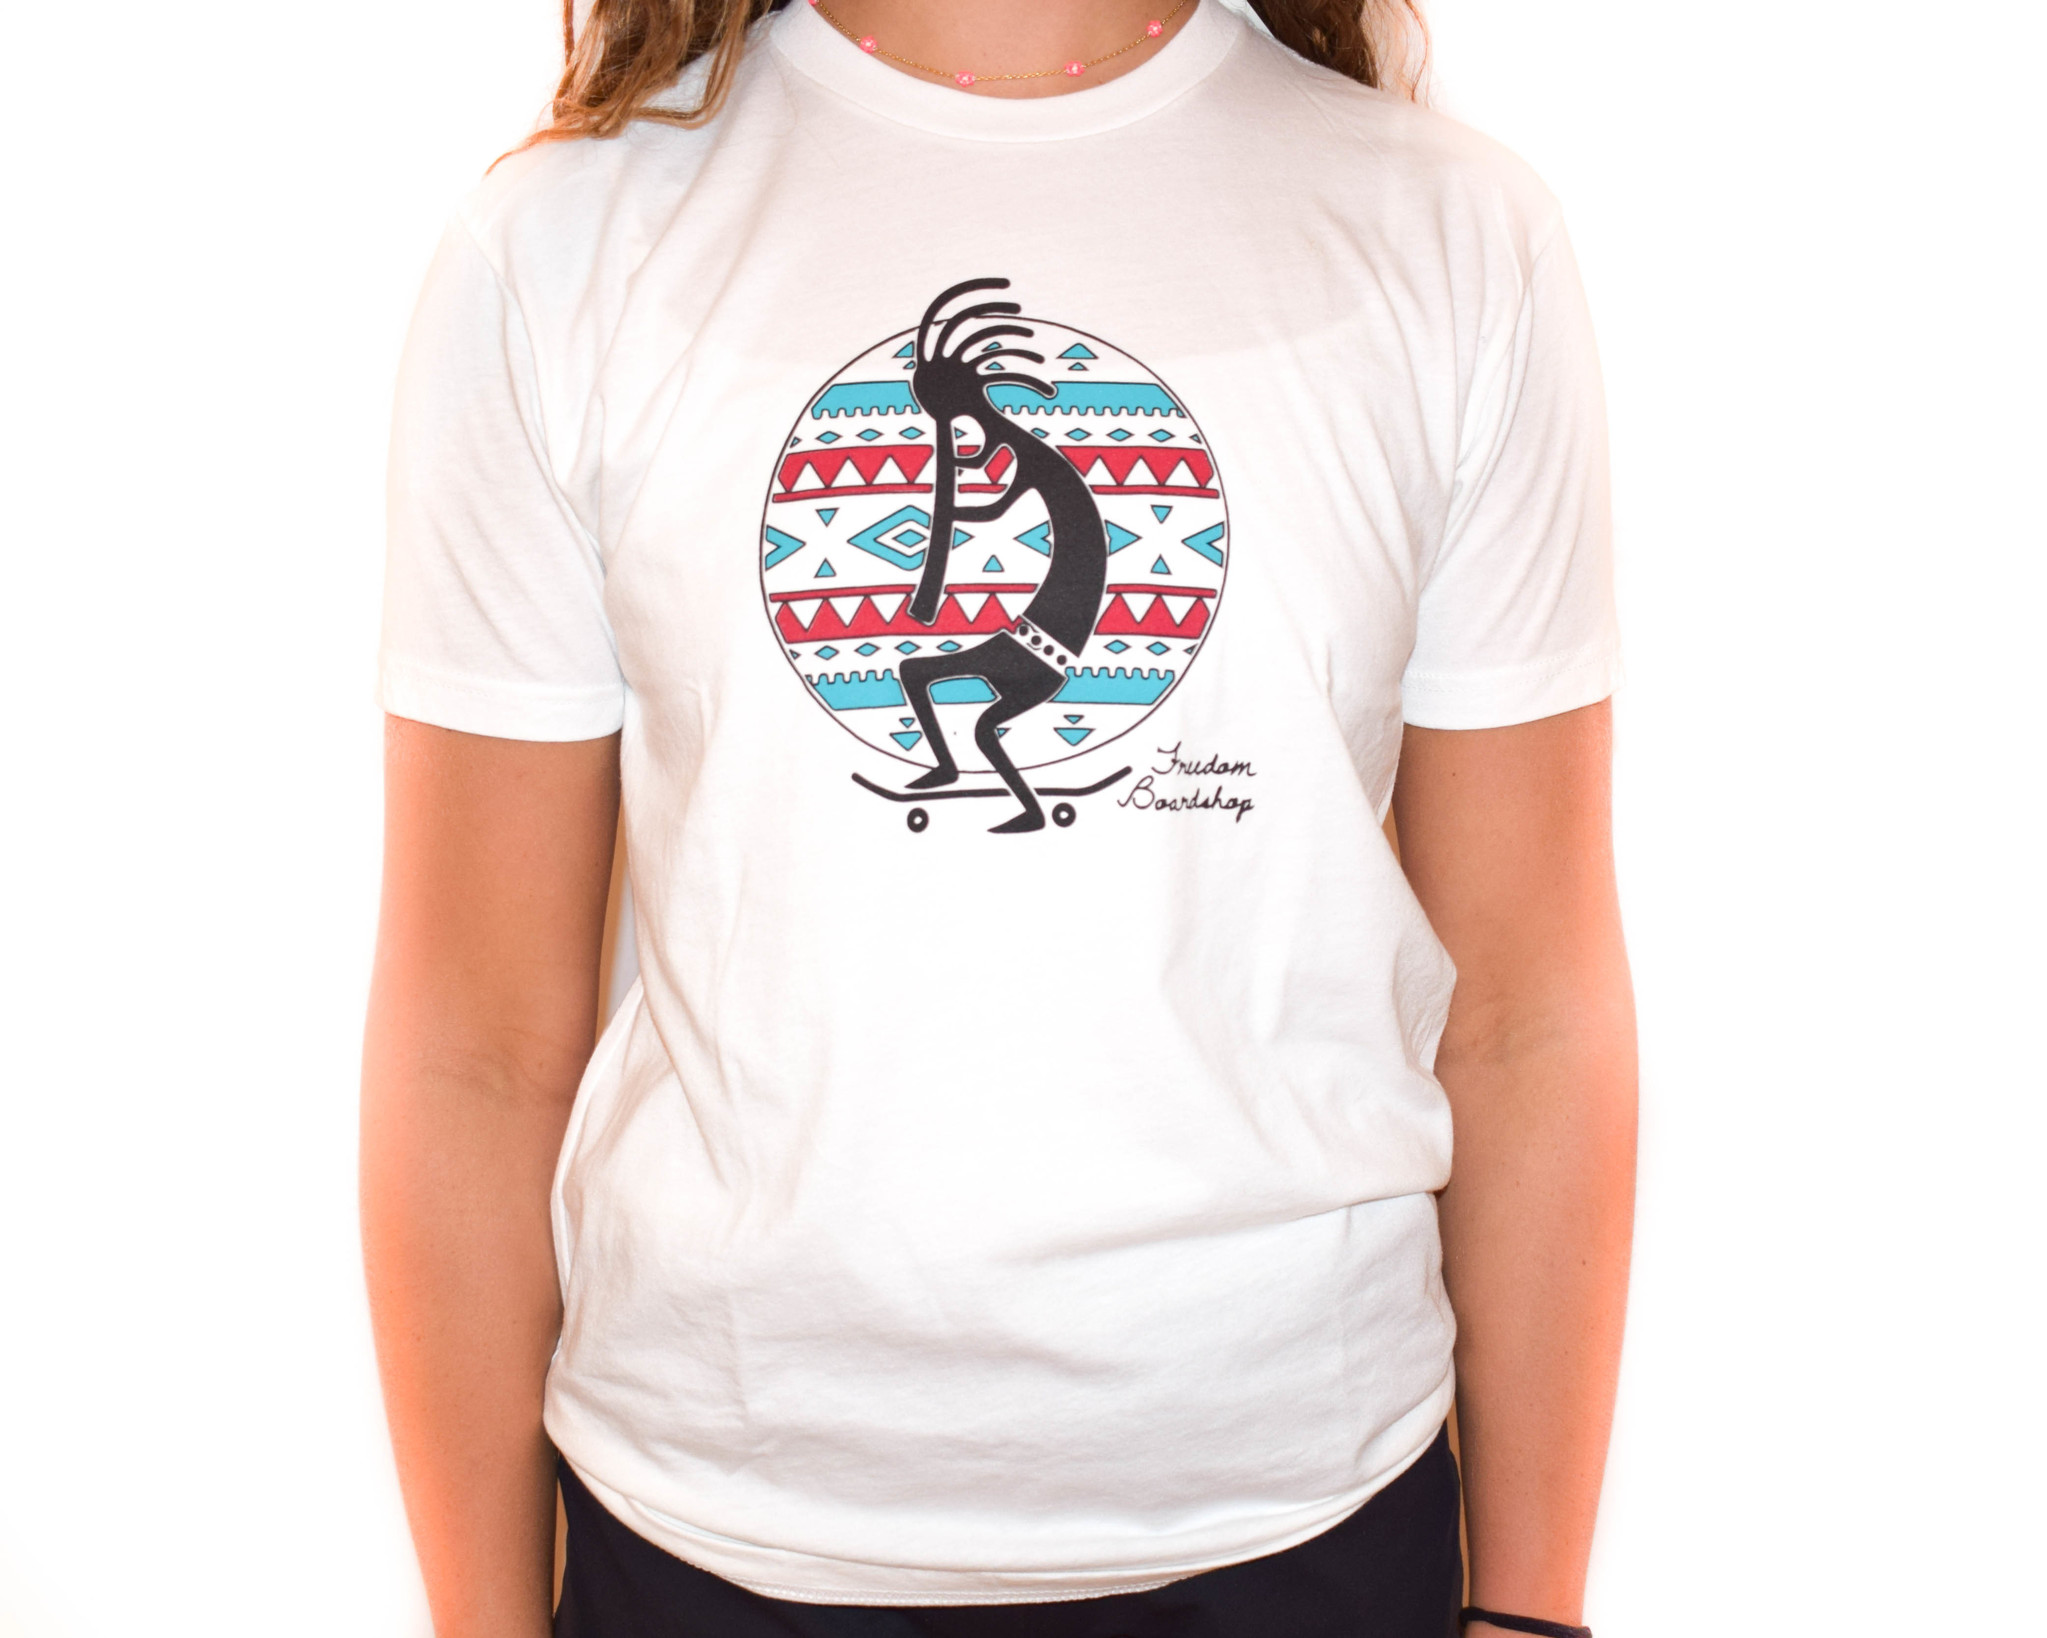 Freedom Boardshop TEE-FREEDOM KOKOPELLI